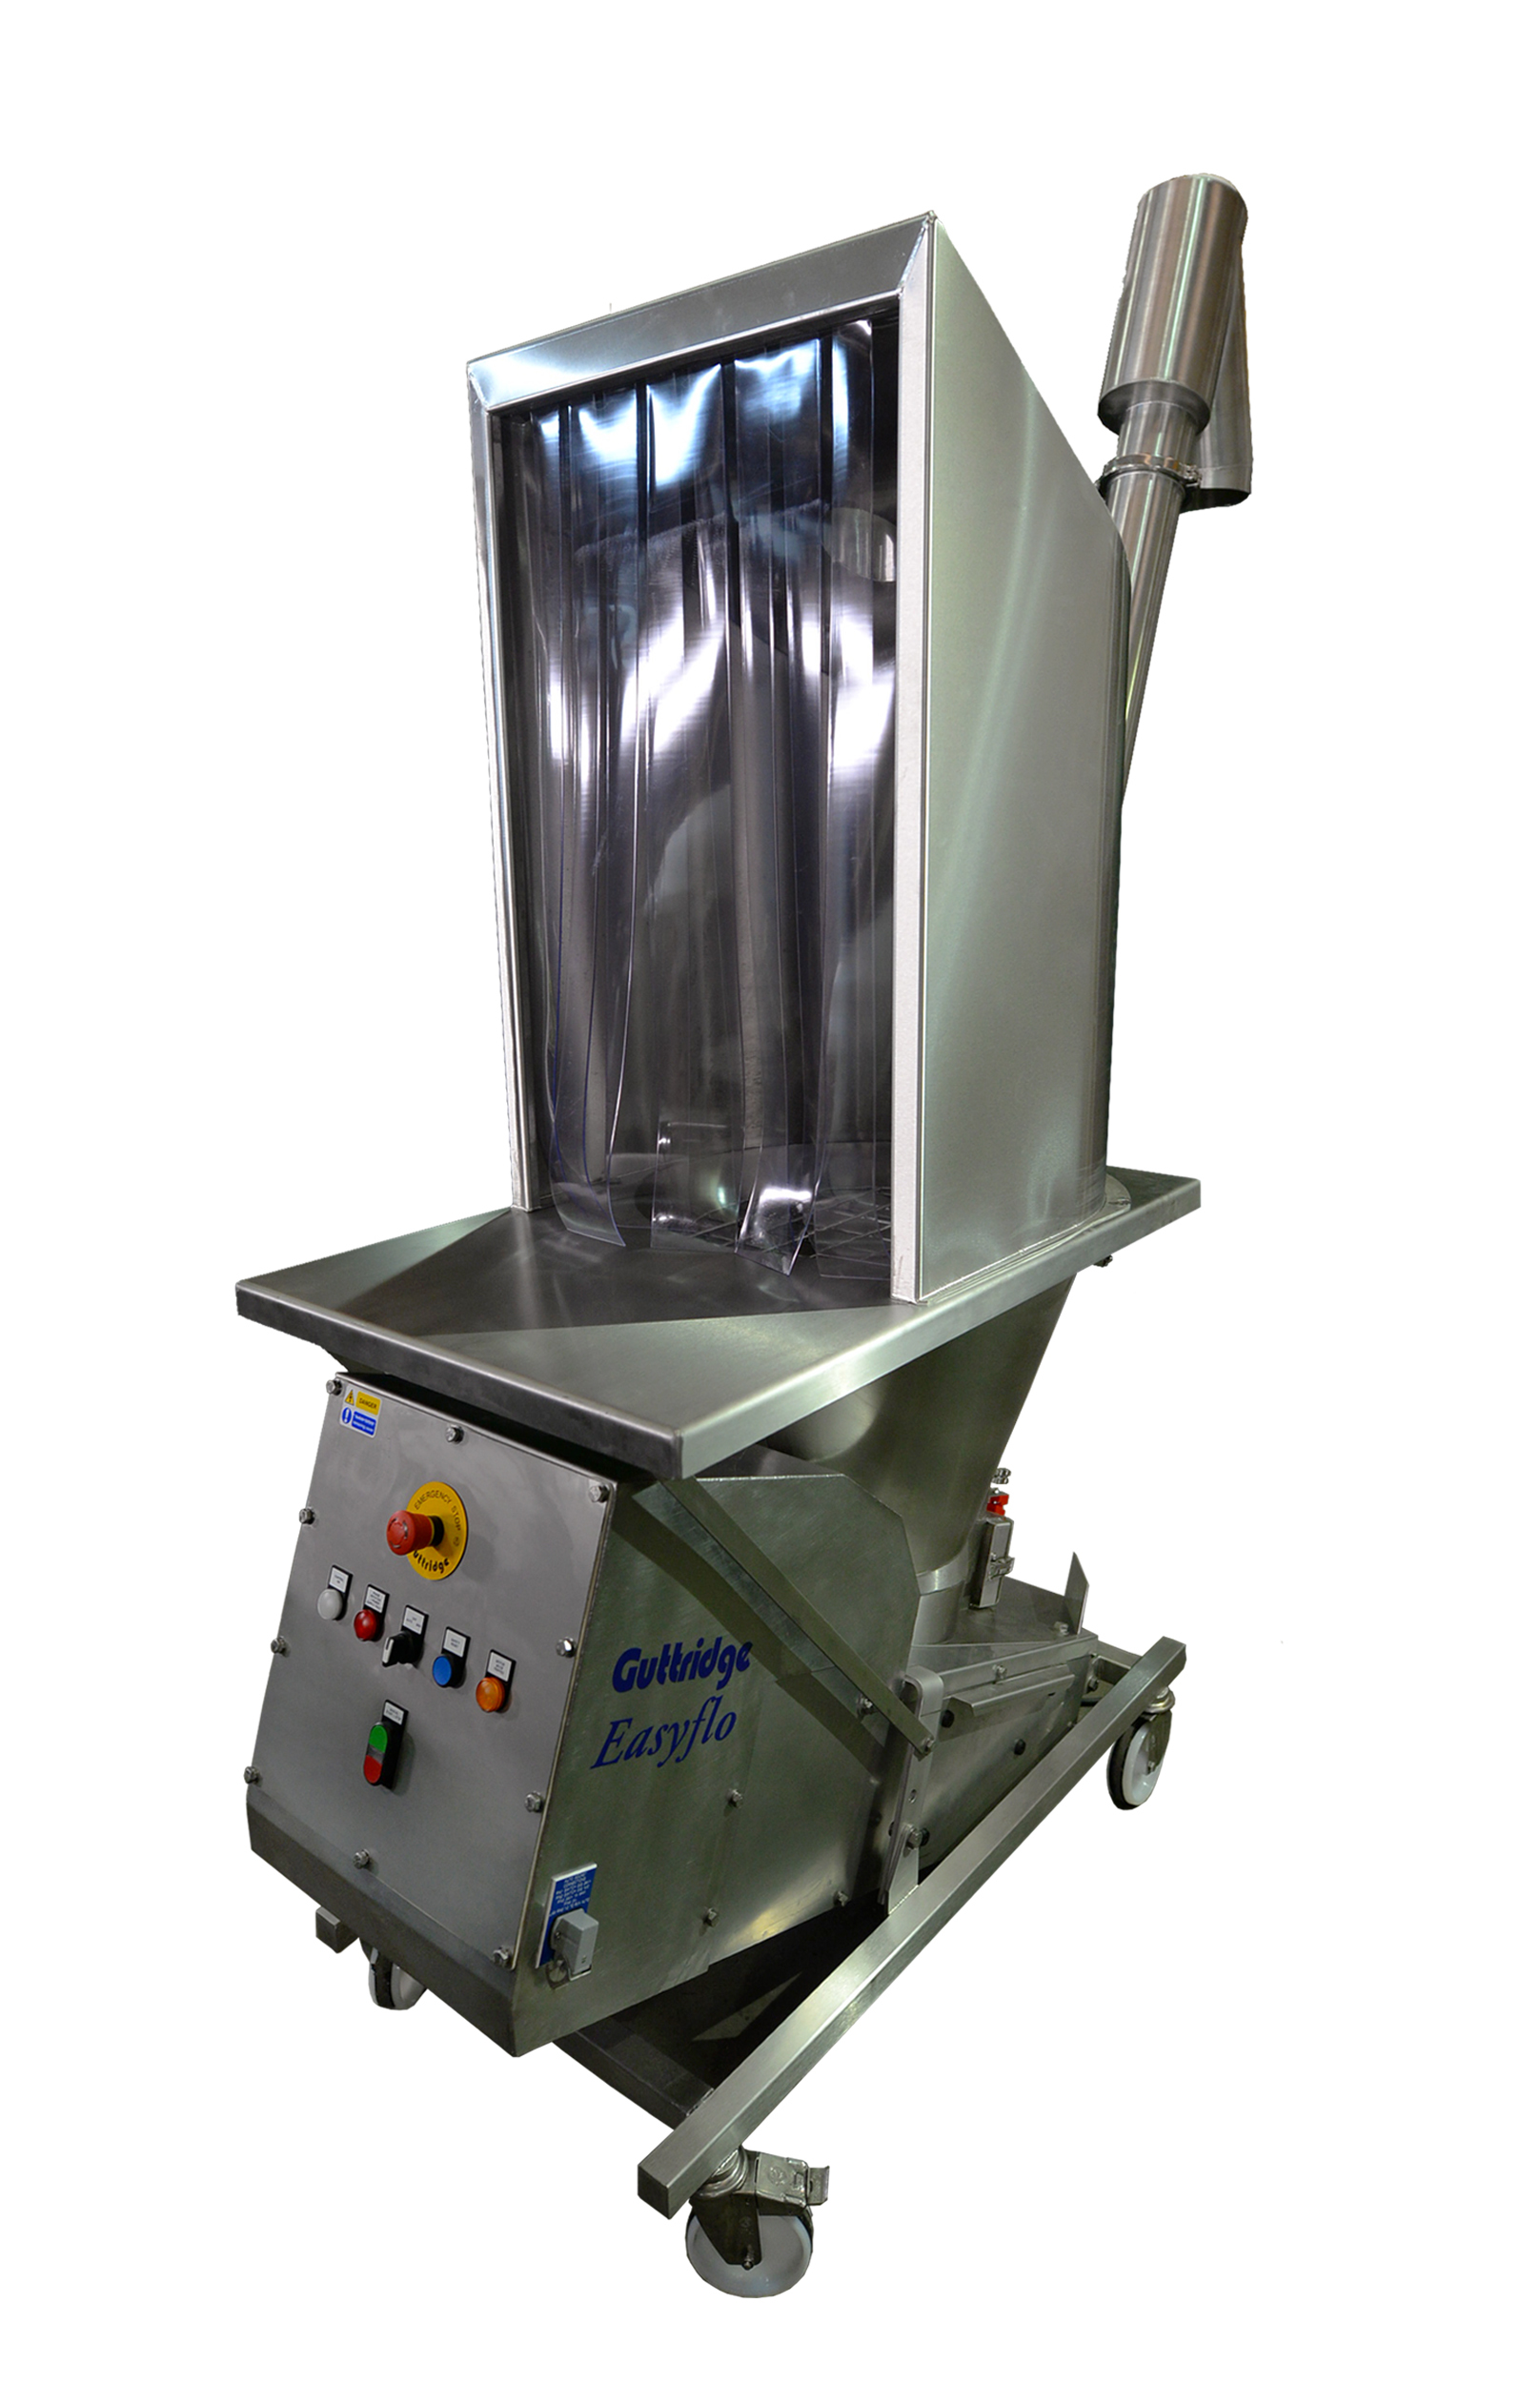 Easyflo Mobile Screw Elevator, Food Grade Machinery Range